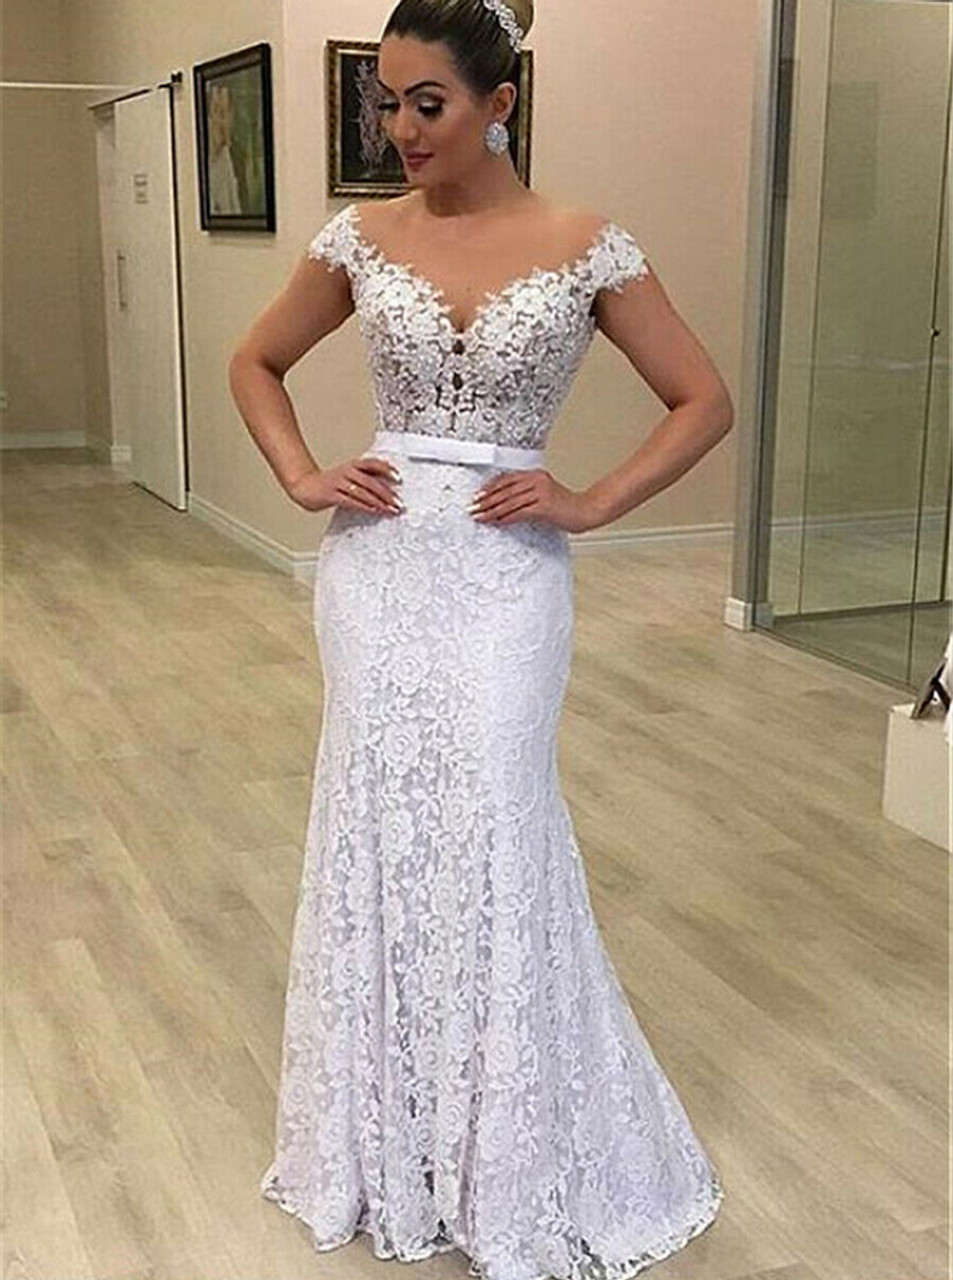 20 in 20 Lace Wedding Dress with Removable Skirt,202020820